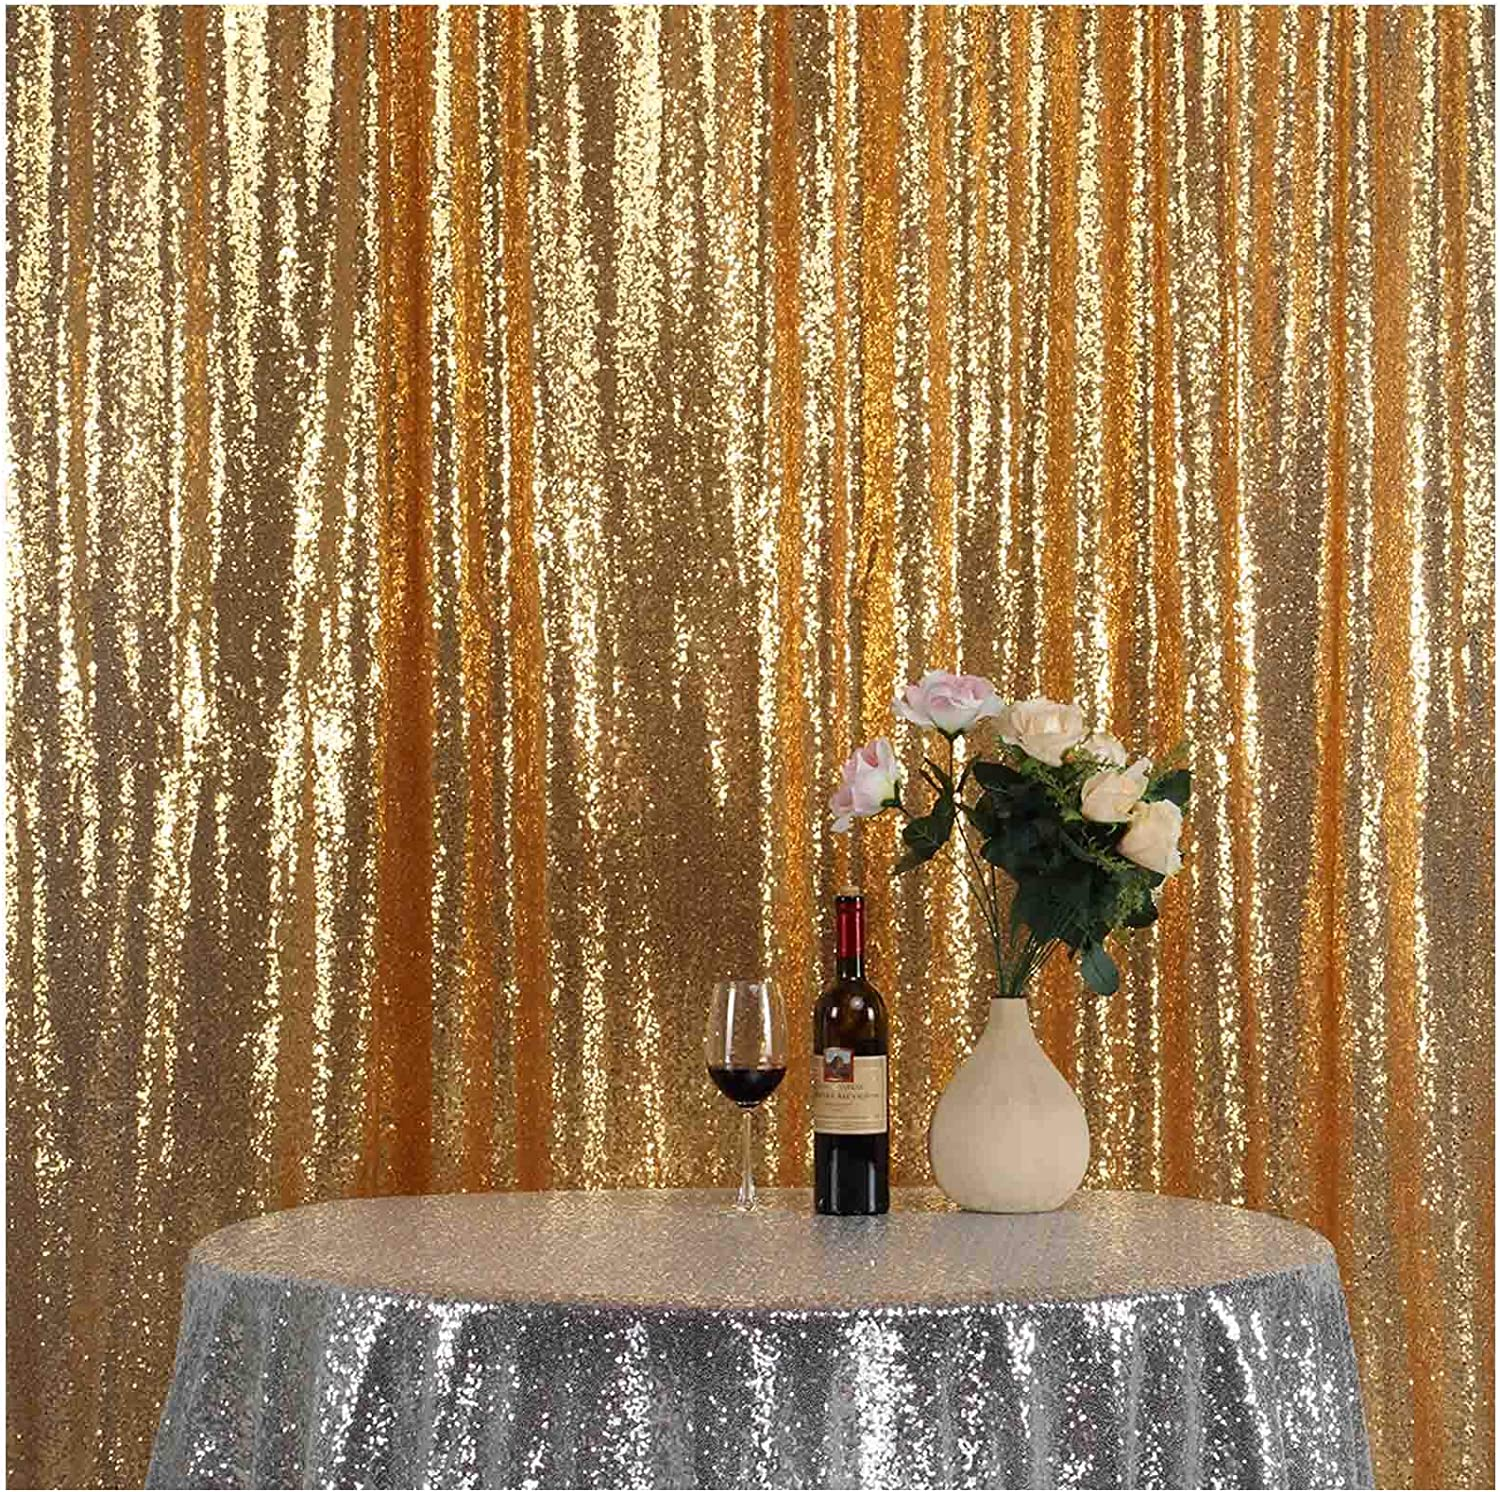 270x275cm Pocket 9x9FT LQIAO Shiny Sequin Backdrop Background 9FTx9FT-Navy Blue,Sequin Curtain Backdrop Photo Booth Wedding Props Glitter Party Background Decoration